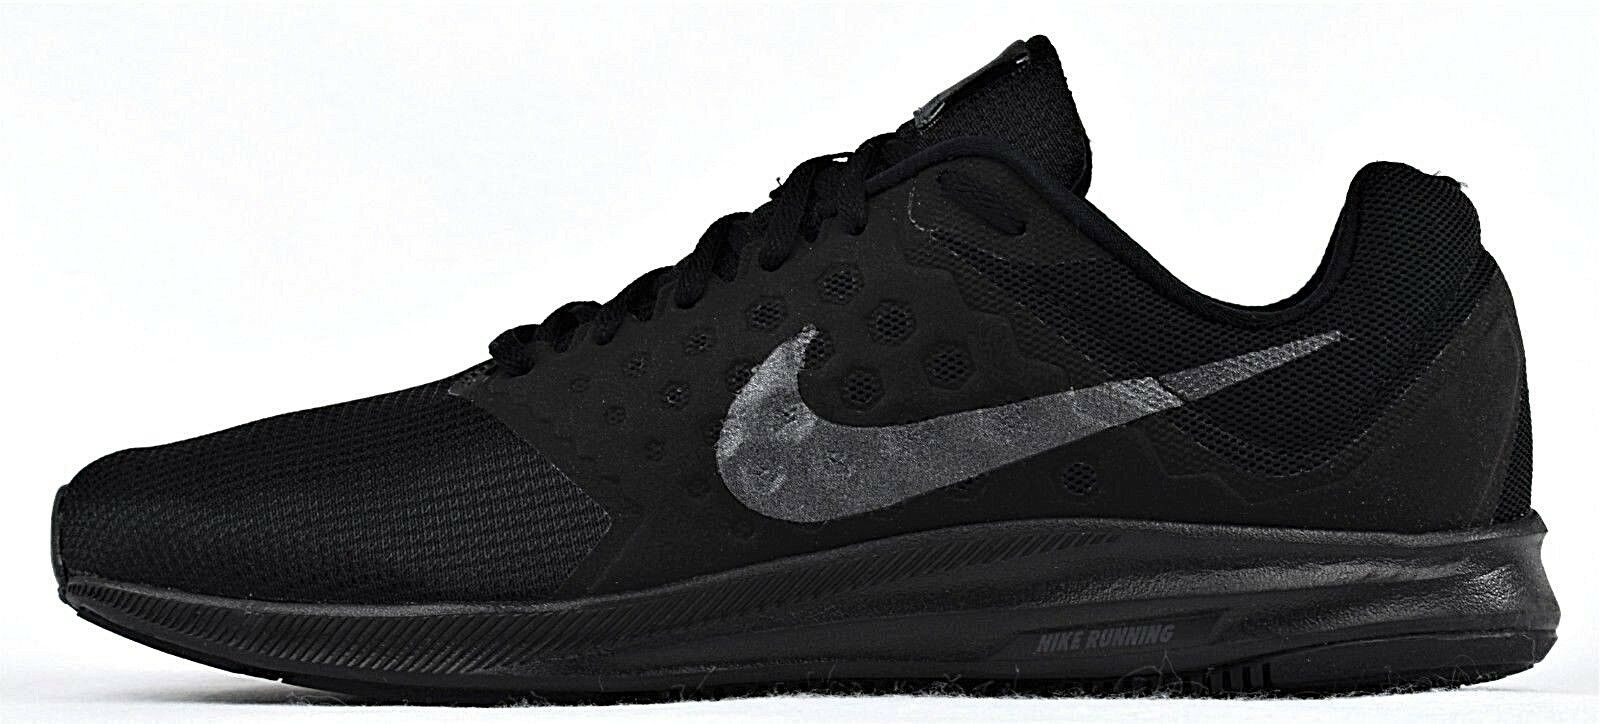 NEW Nike Downshifter 7 Men's Running shoes Black Anthracite